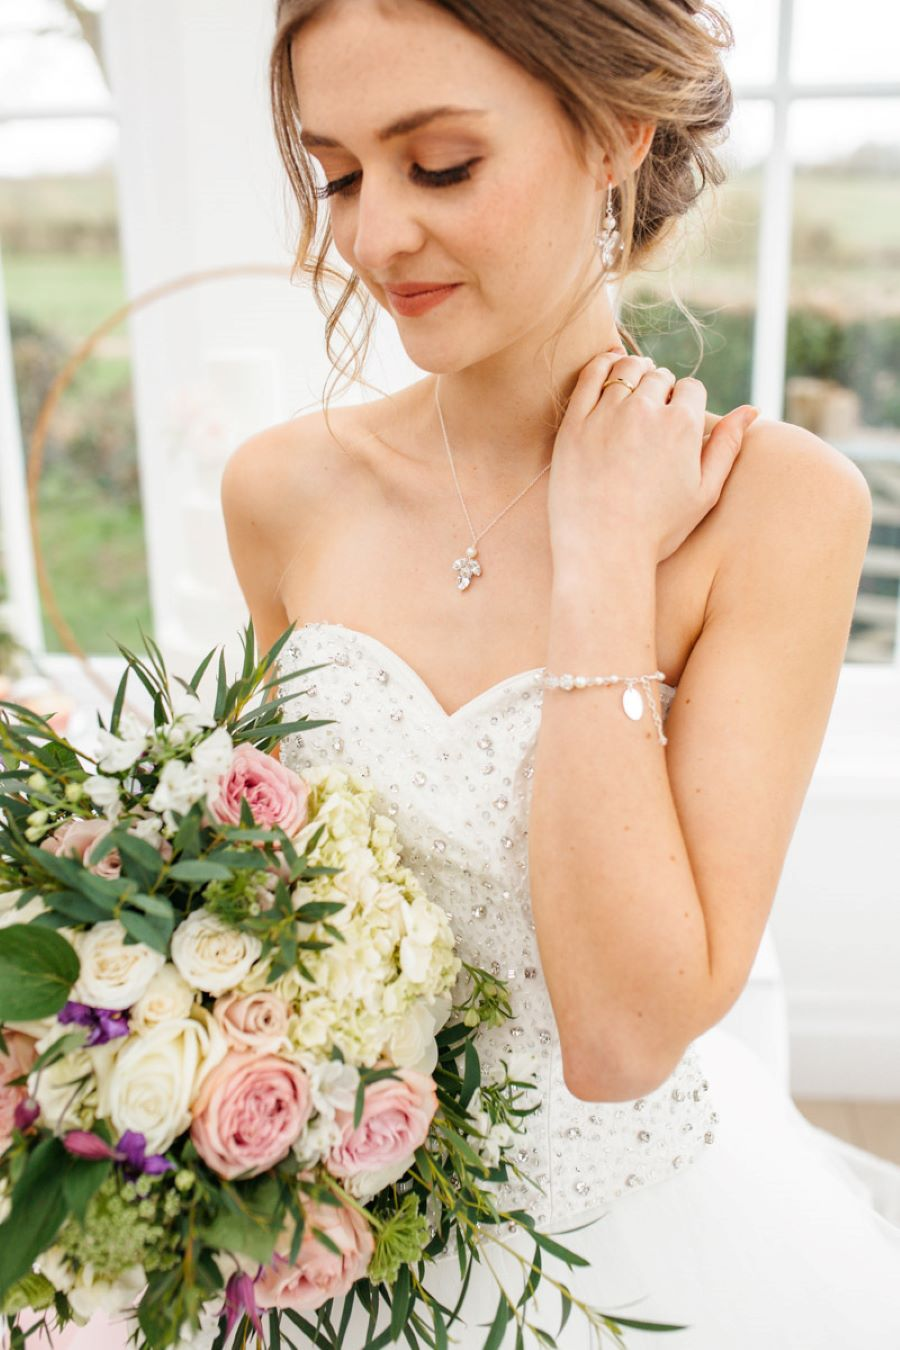 Light and romance with natural blush tones - wedding ideas from Downham Hall. Photographer credit Magical Moments Photography (45)